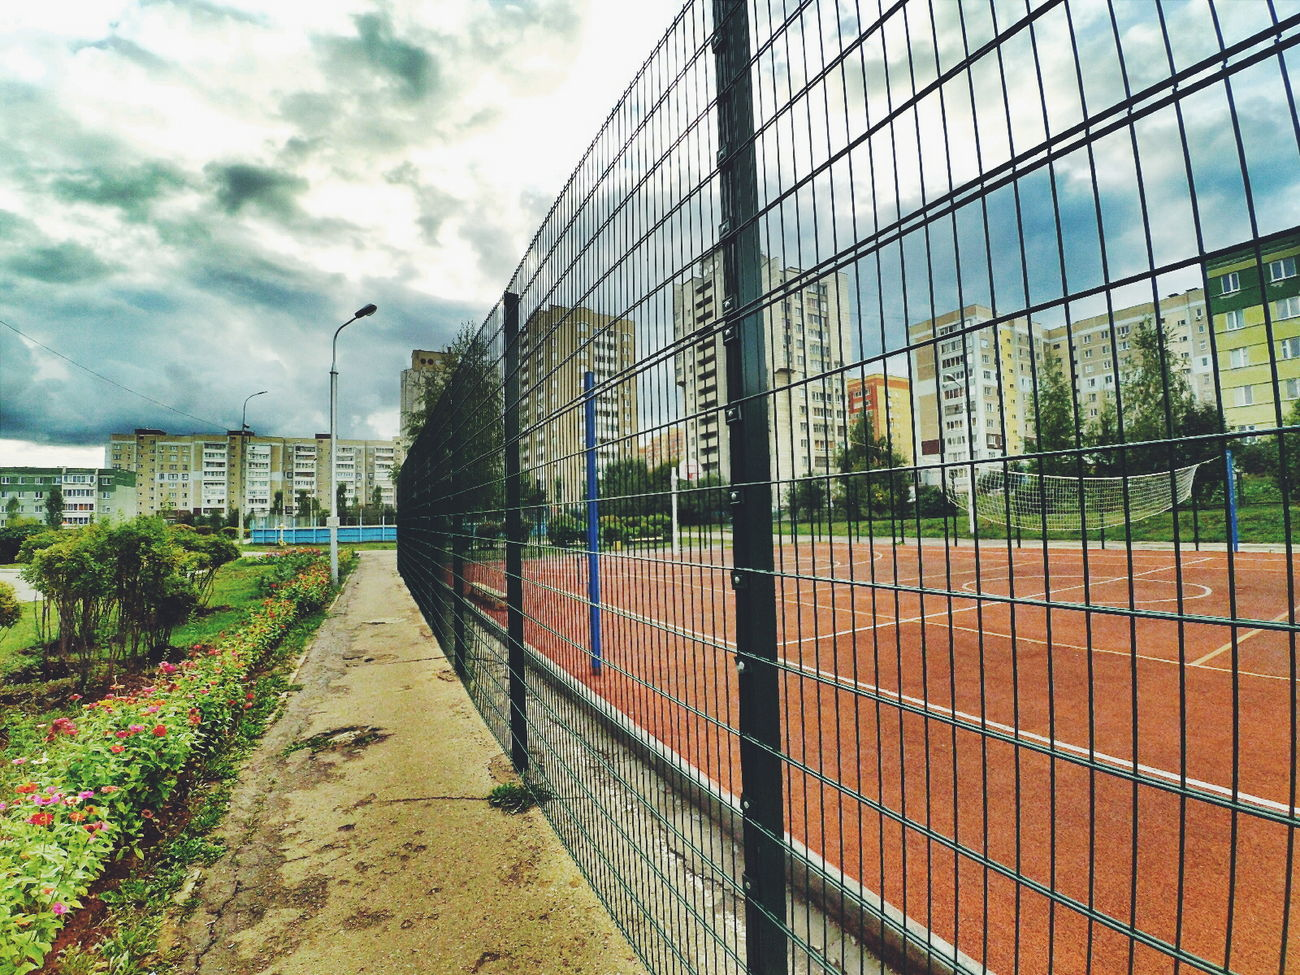 Когда на улице совсем пасмурно.Architecture Building Exterior Built Structure Fence Sky City Outdoors Travel Destinations Day Cloud Cloud - Sky Development Iron - Metal No People Diminishing Perspective Weathered City Life Office Block Cloudy Xiaomi Yi Action Camera